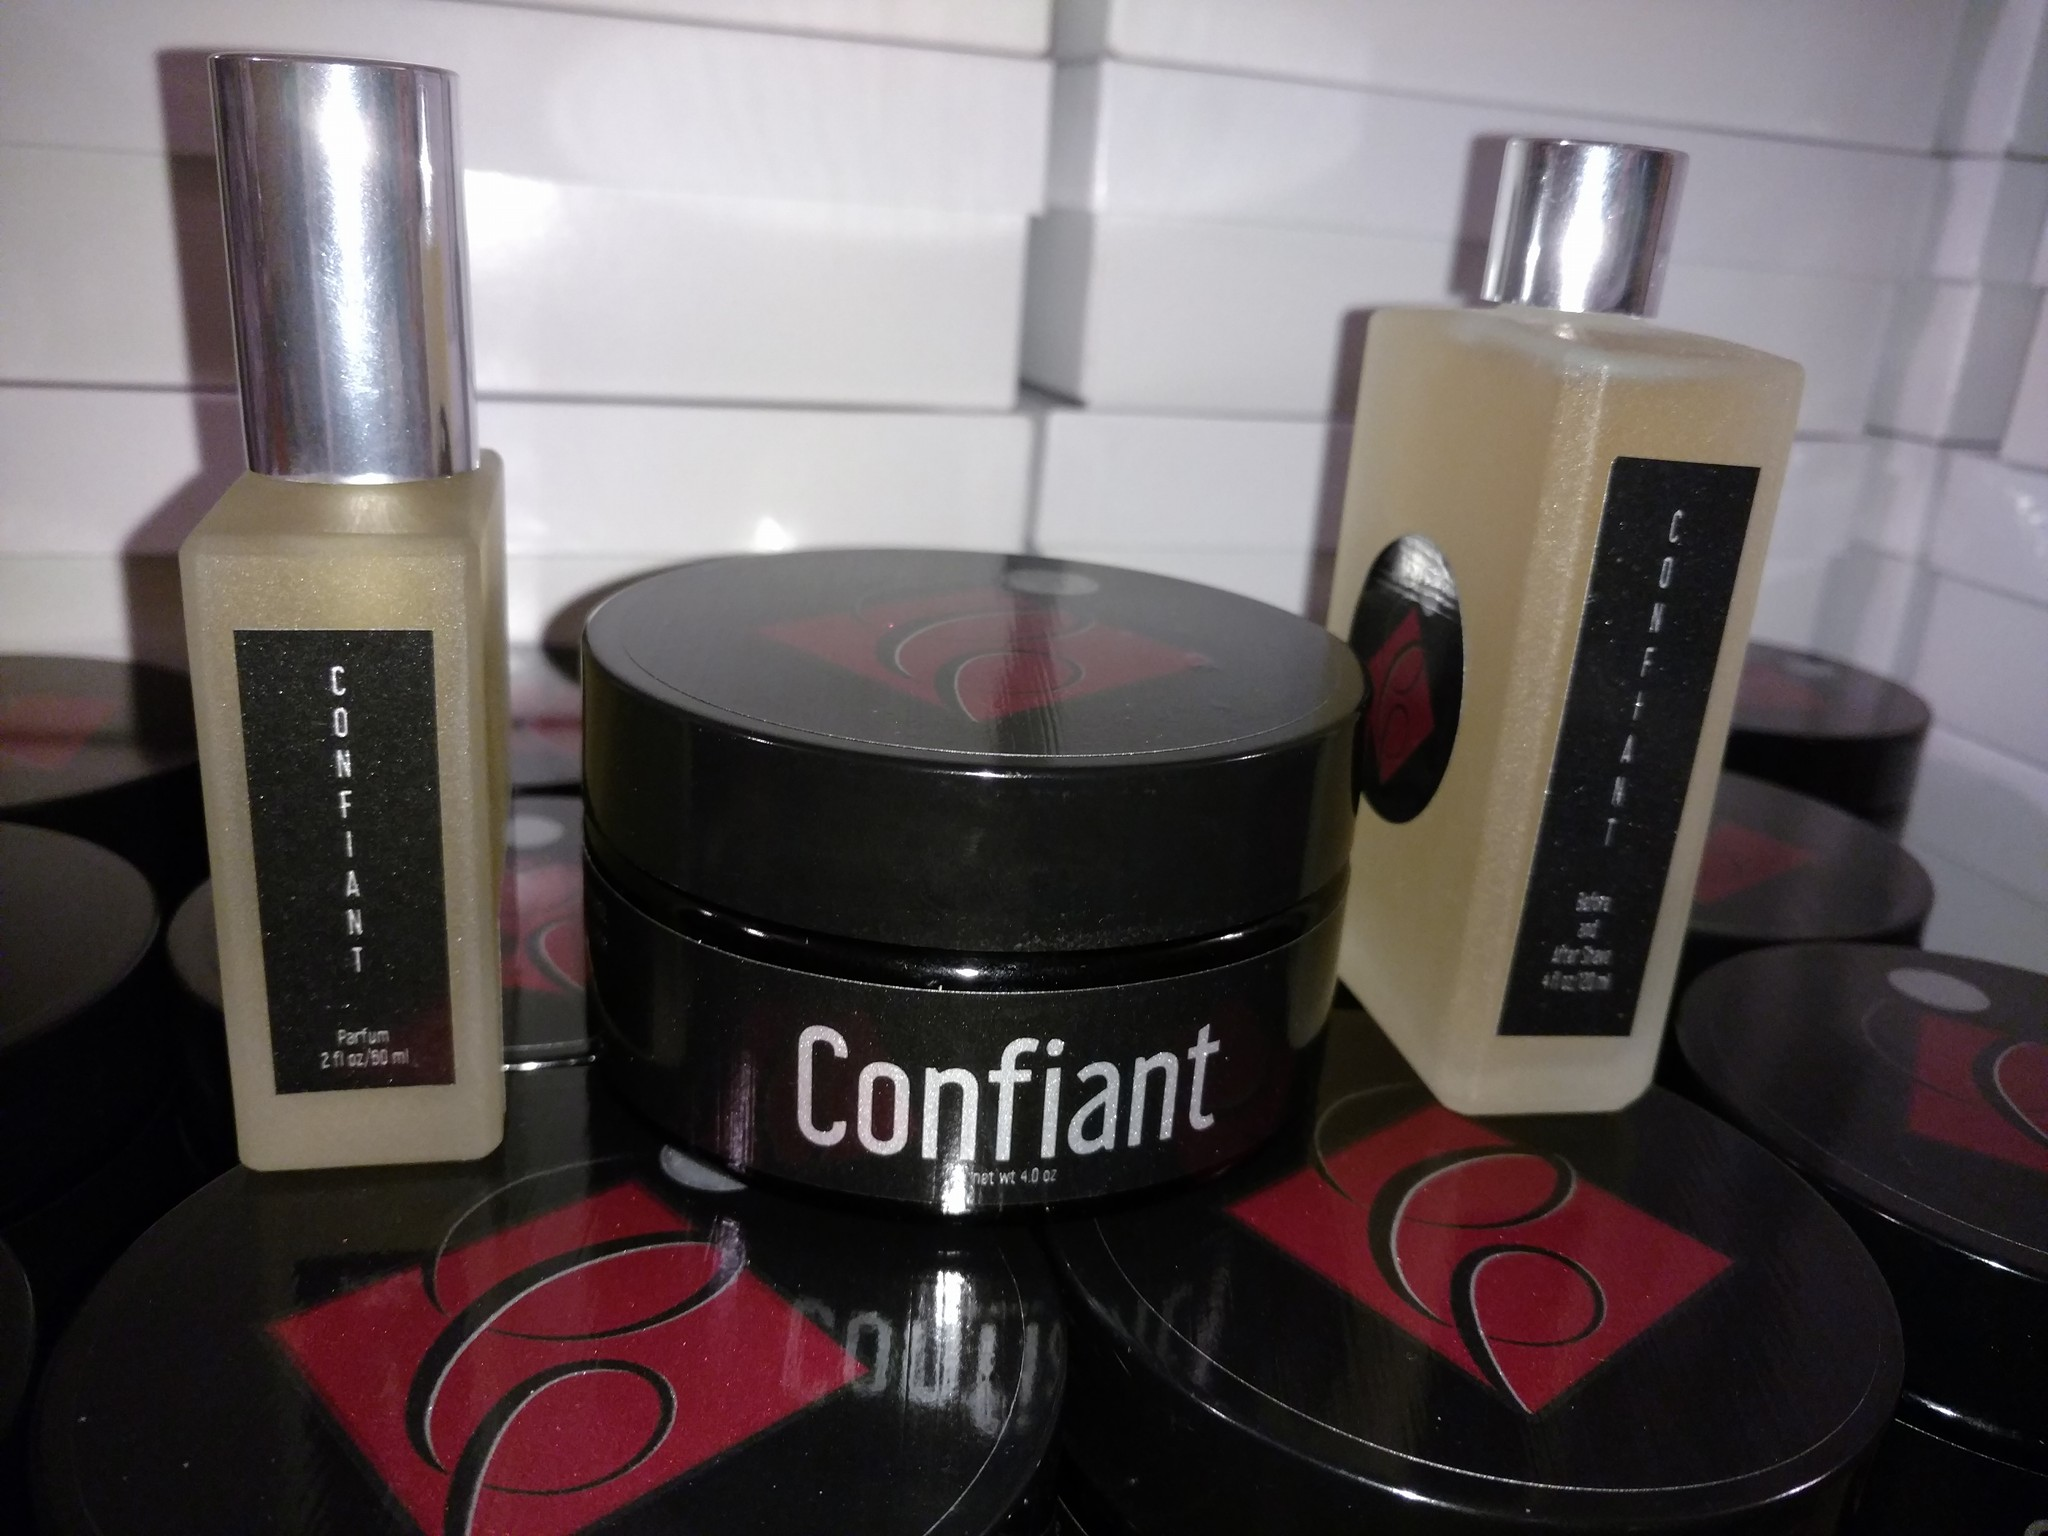 Catie's Bubbles - Confiant - Aftershave image